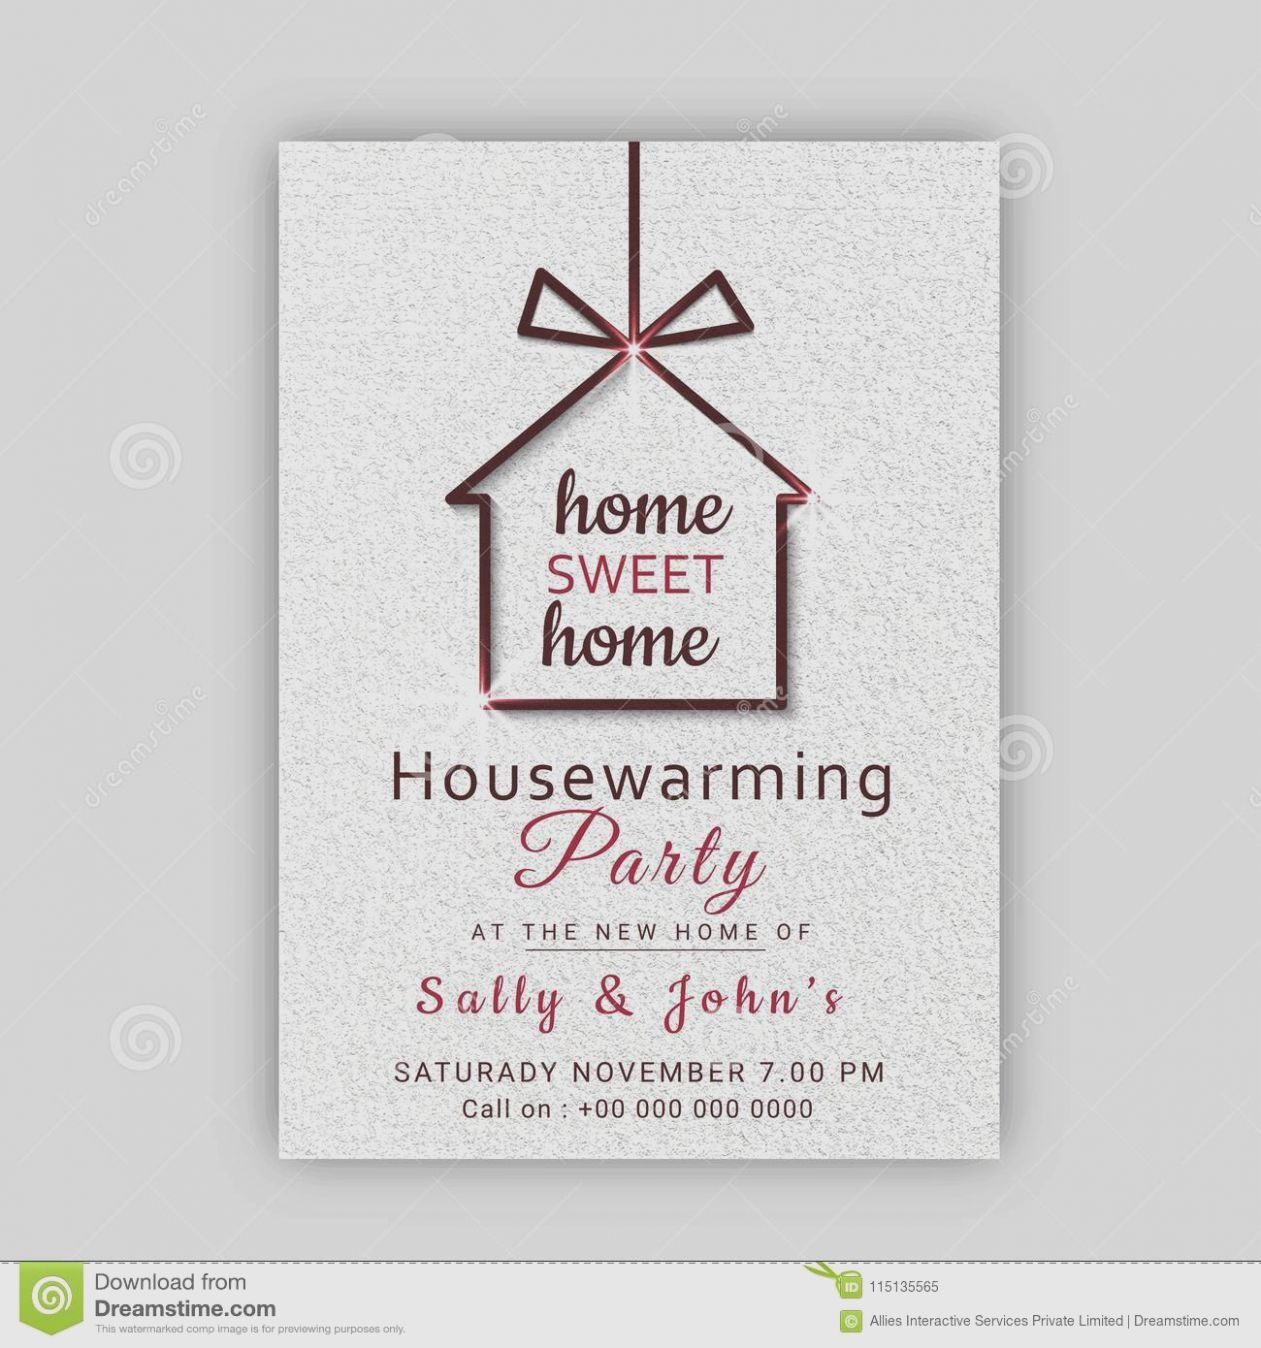 7 New Home Card Invitation Housewarming Invitation Templates Party Invite Template Housewarming Invitation Cards